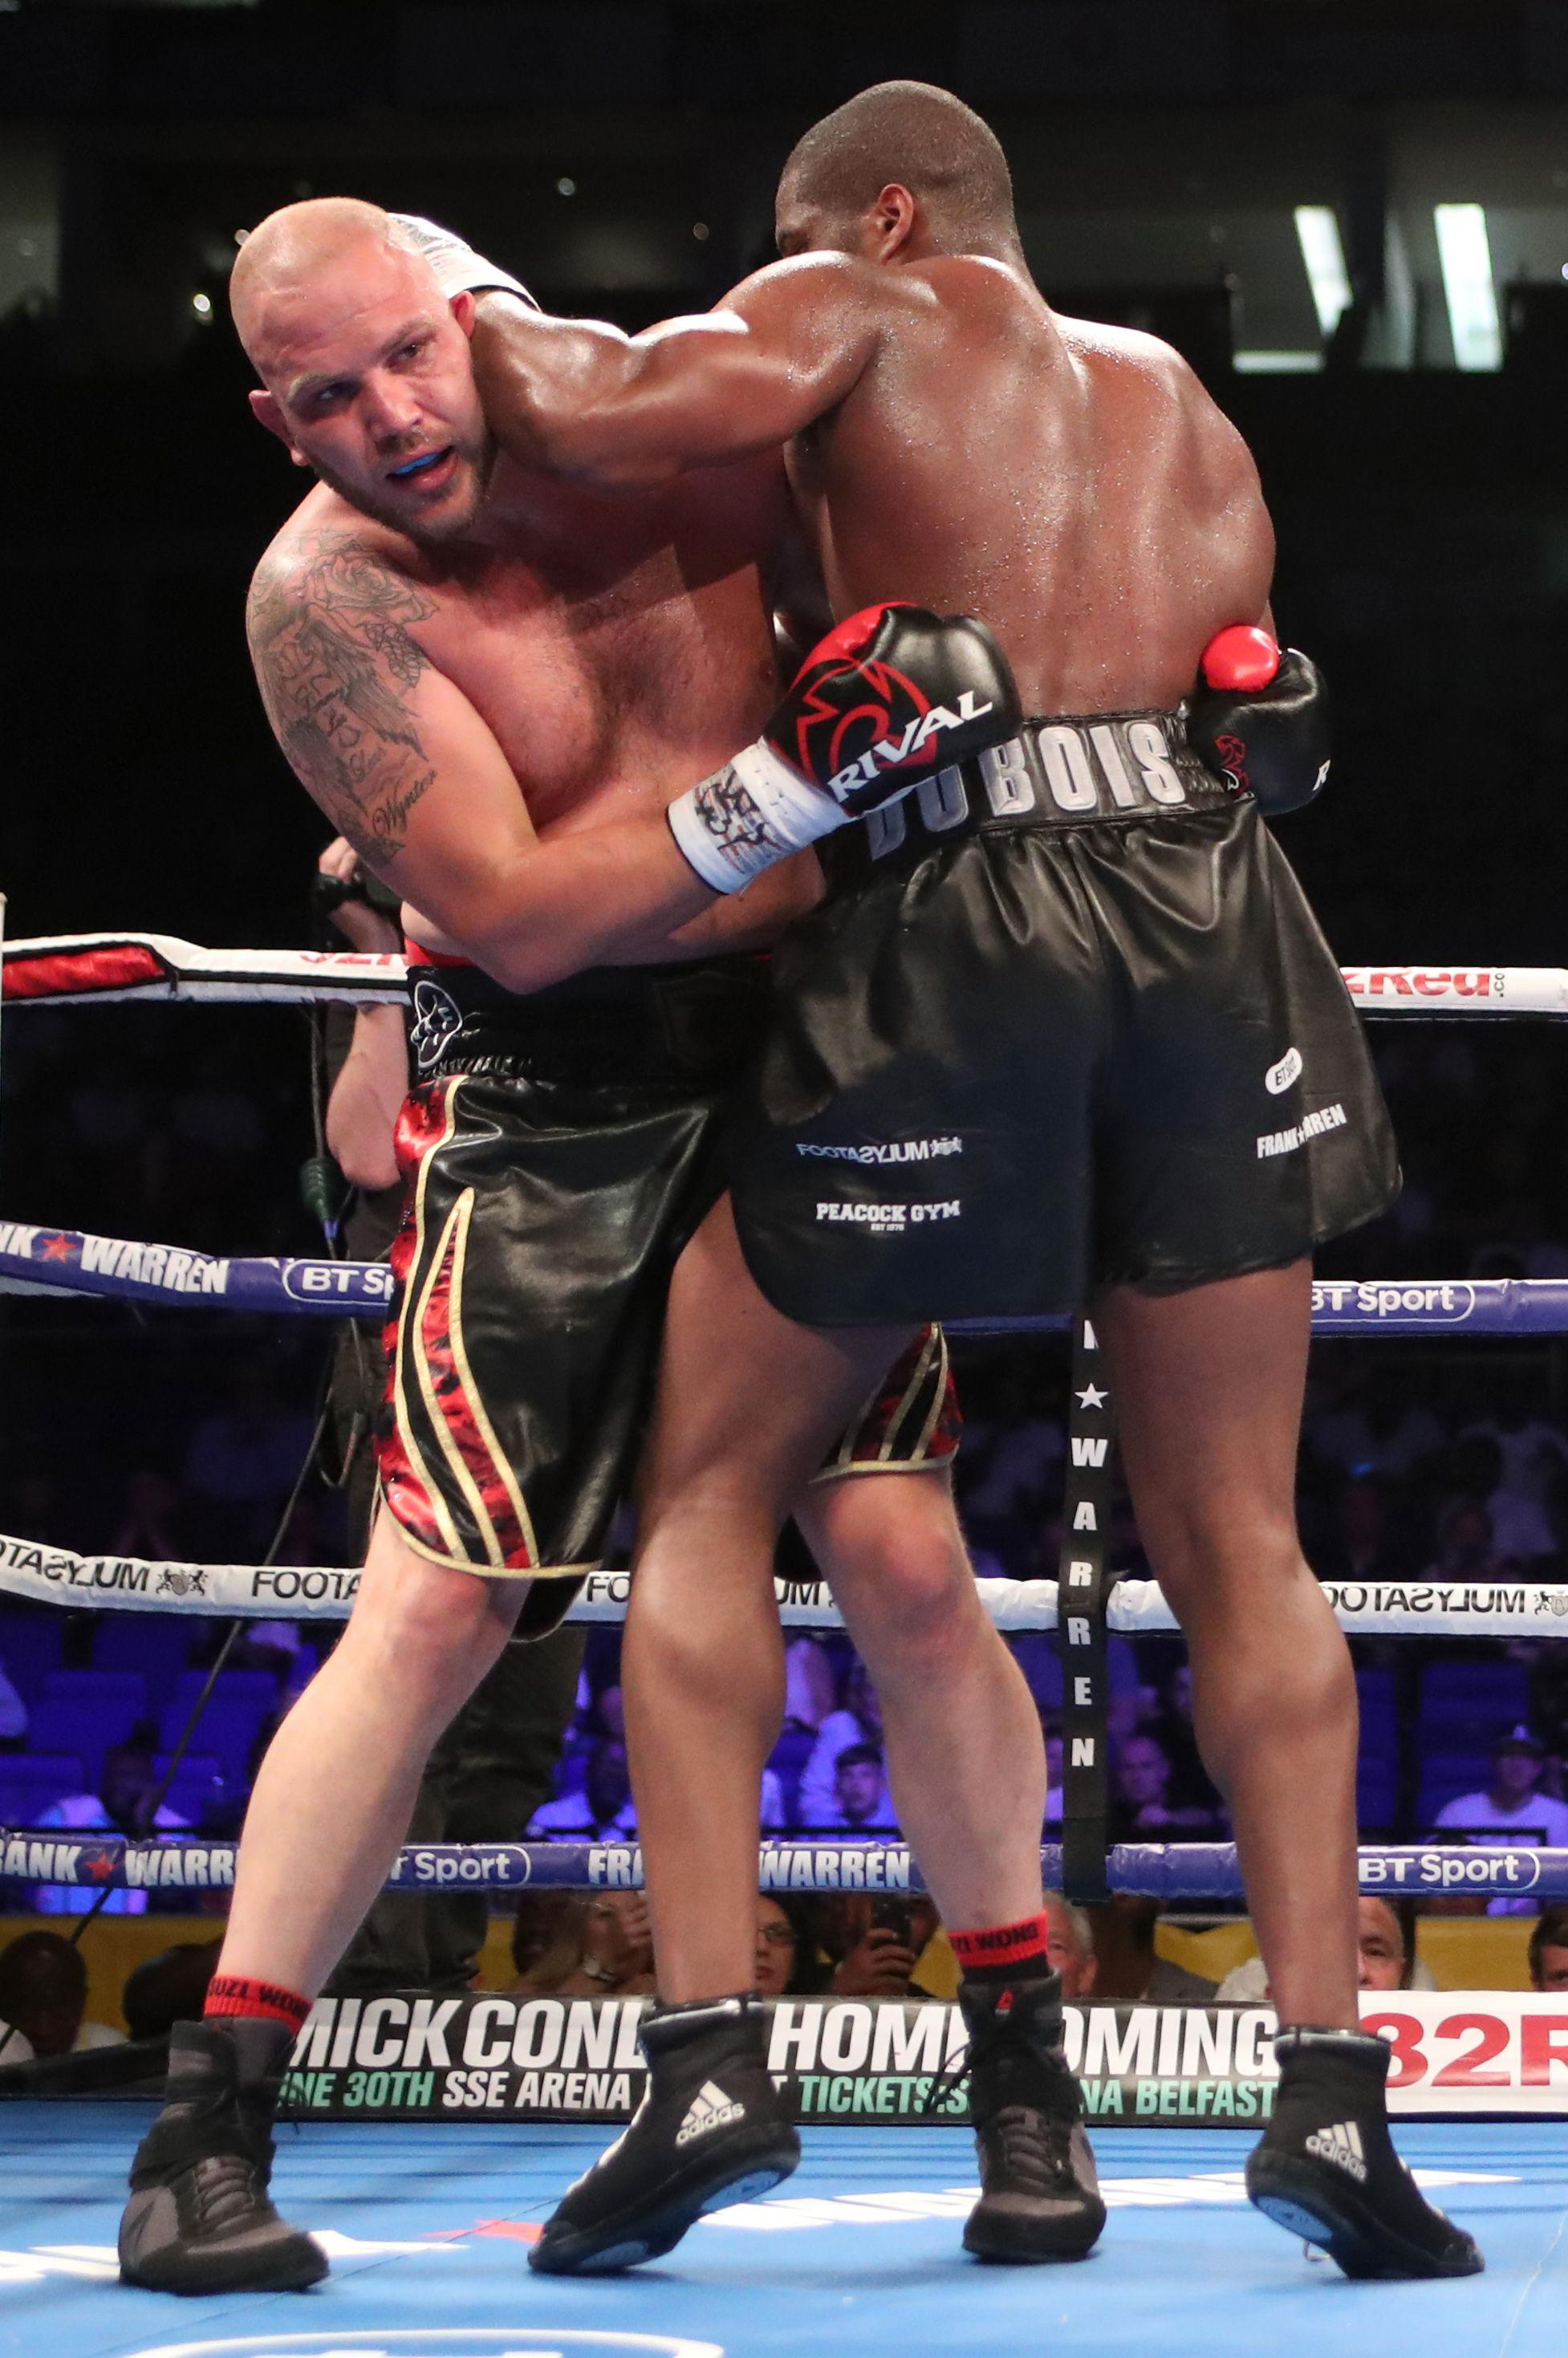 Daniel Dubois secured a fifth round victory over Tom Little